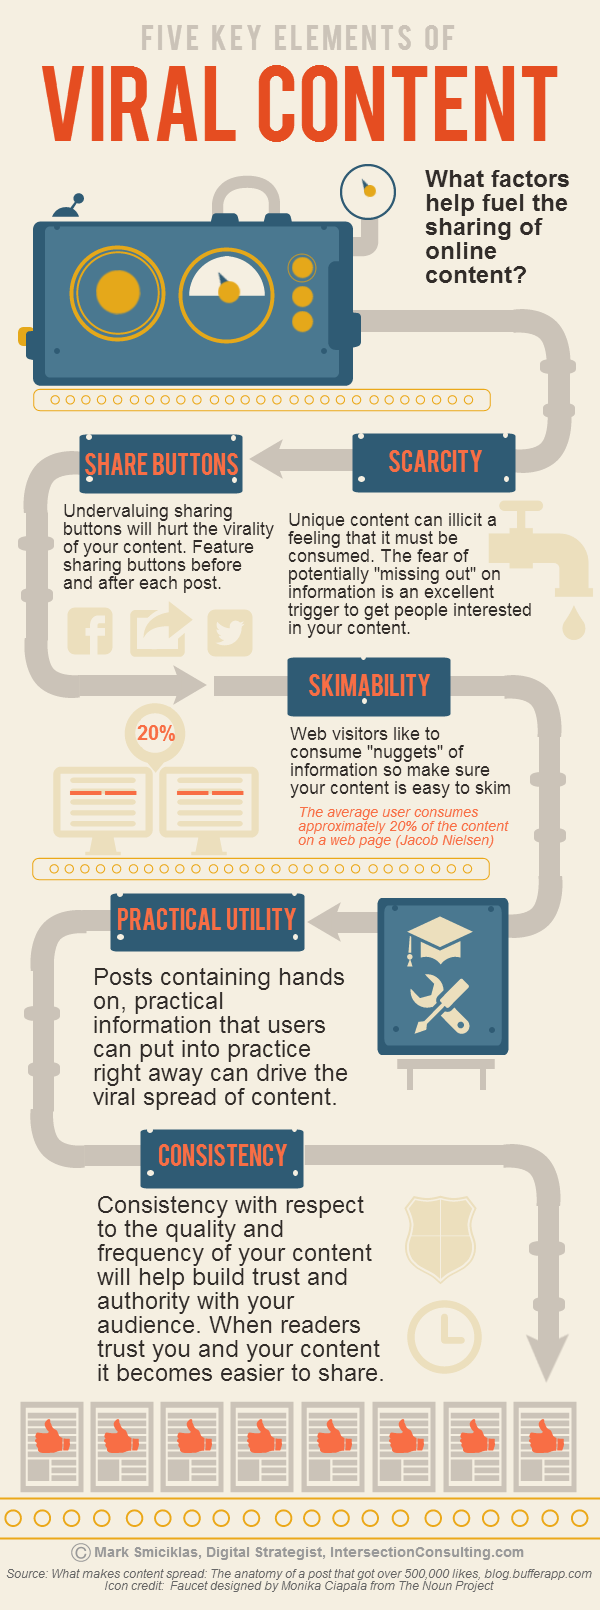 5 Key Elements of Viral Content